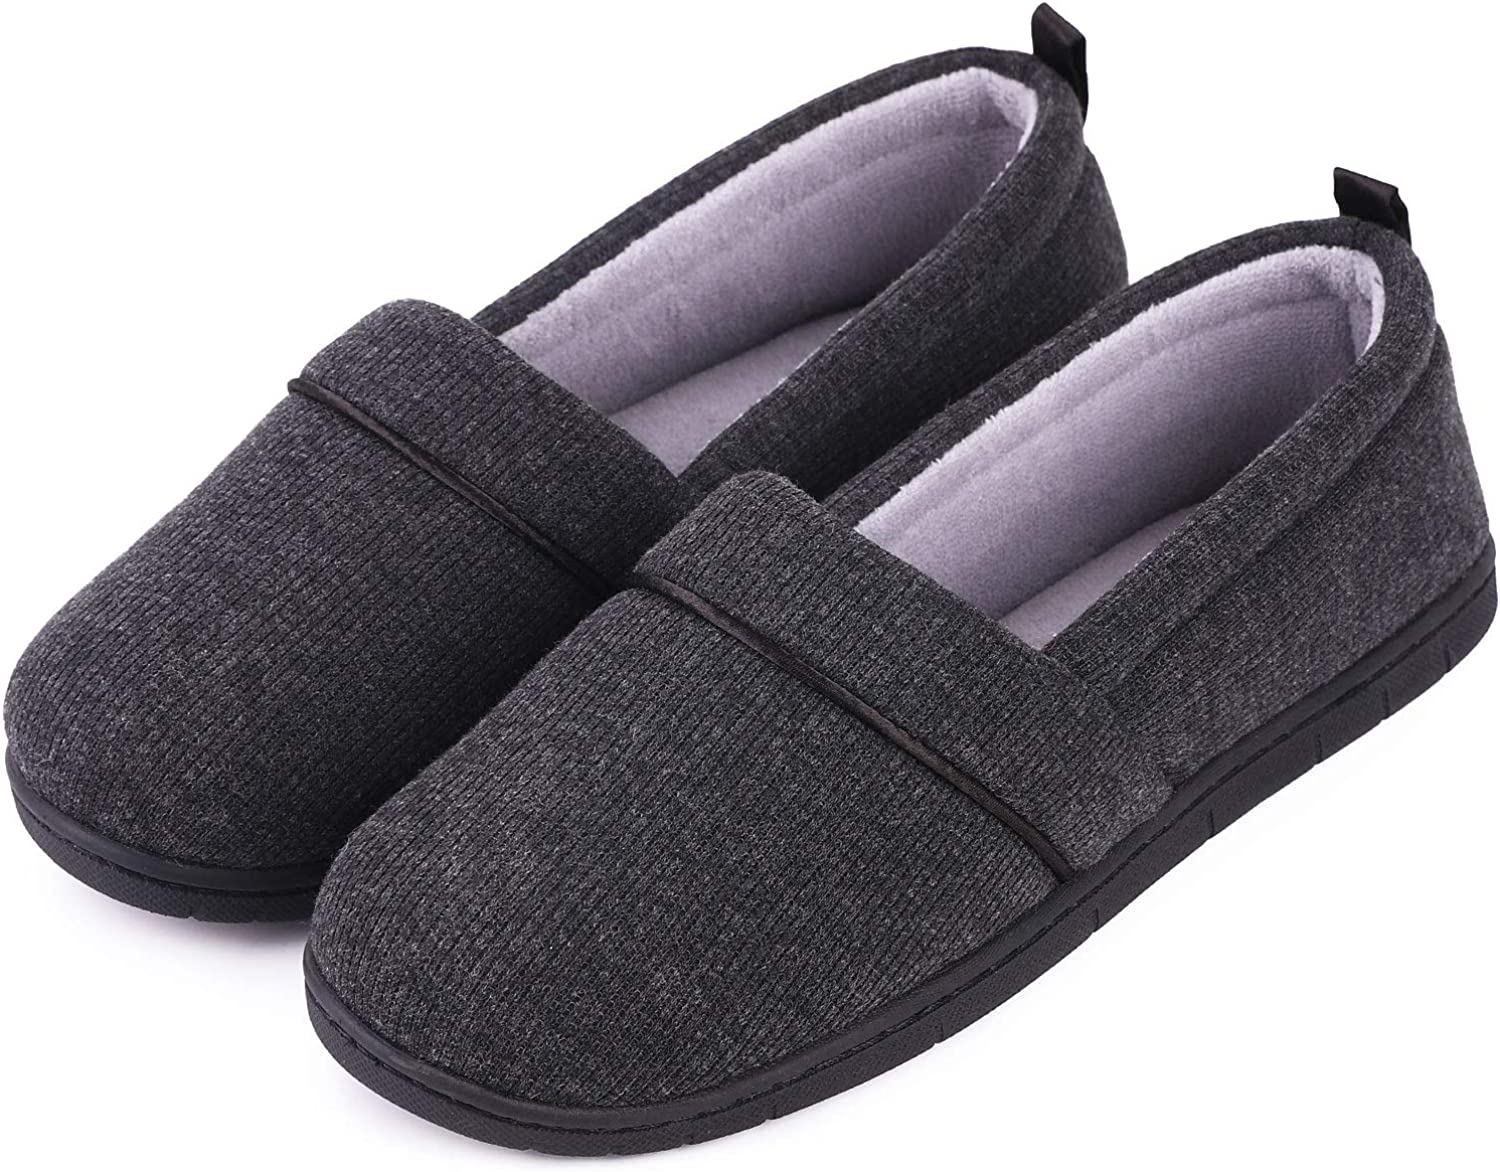 Women's Comfort Cotton Knit Memory Foam House Shoes Light Weight Terry Cloth Loafer Slippers w/ Anti-Skid Rubber Sole